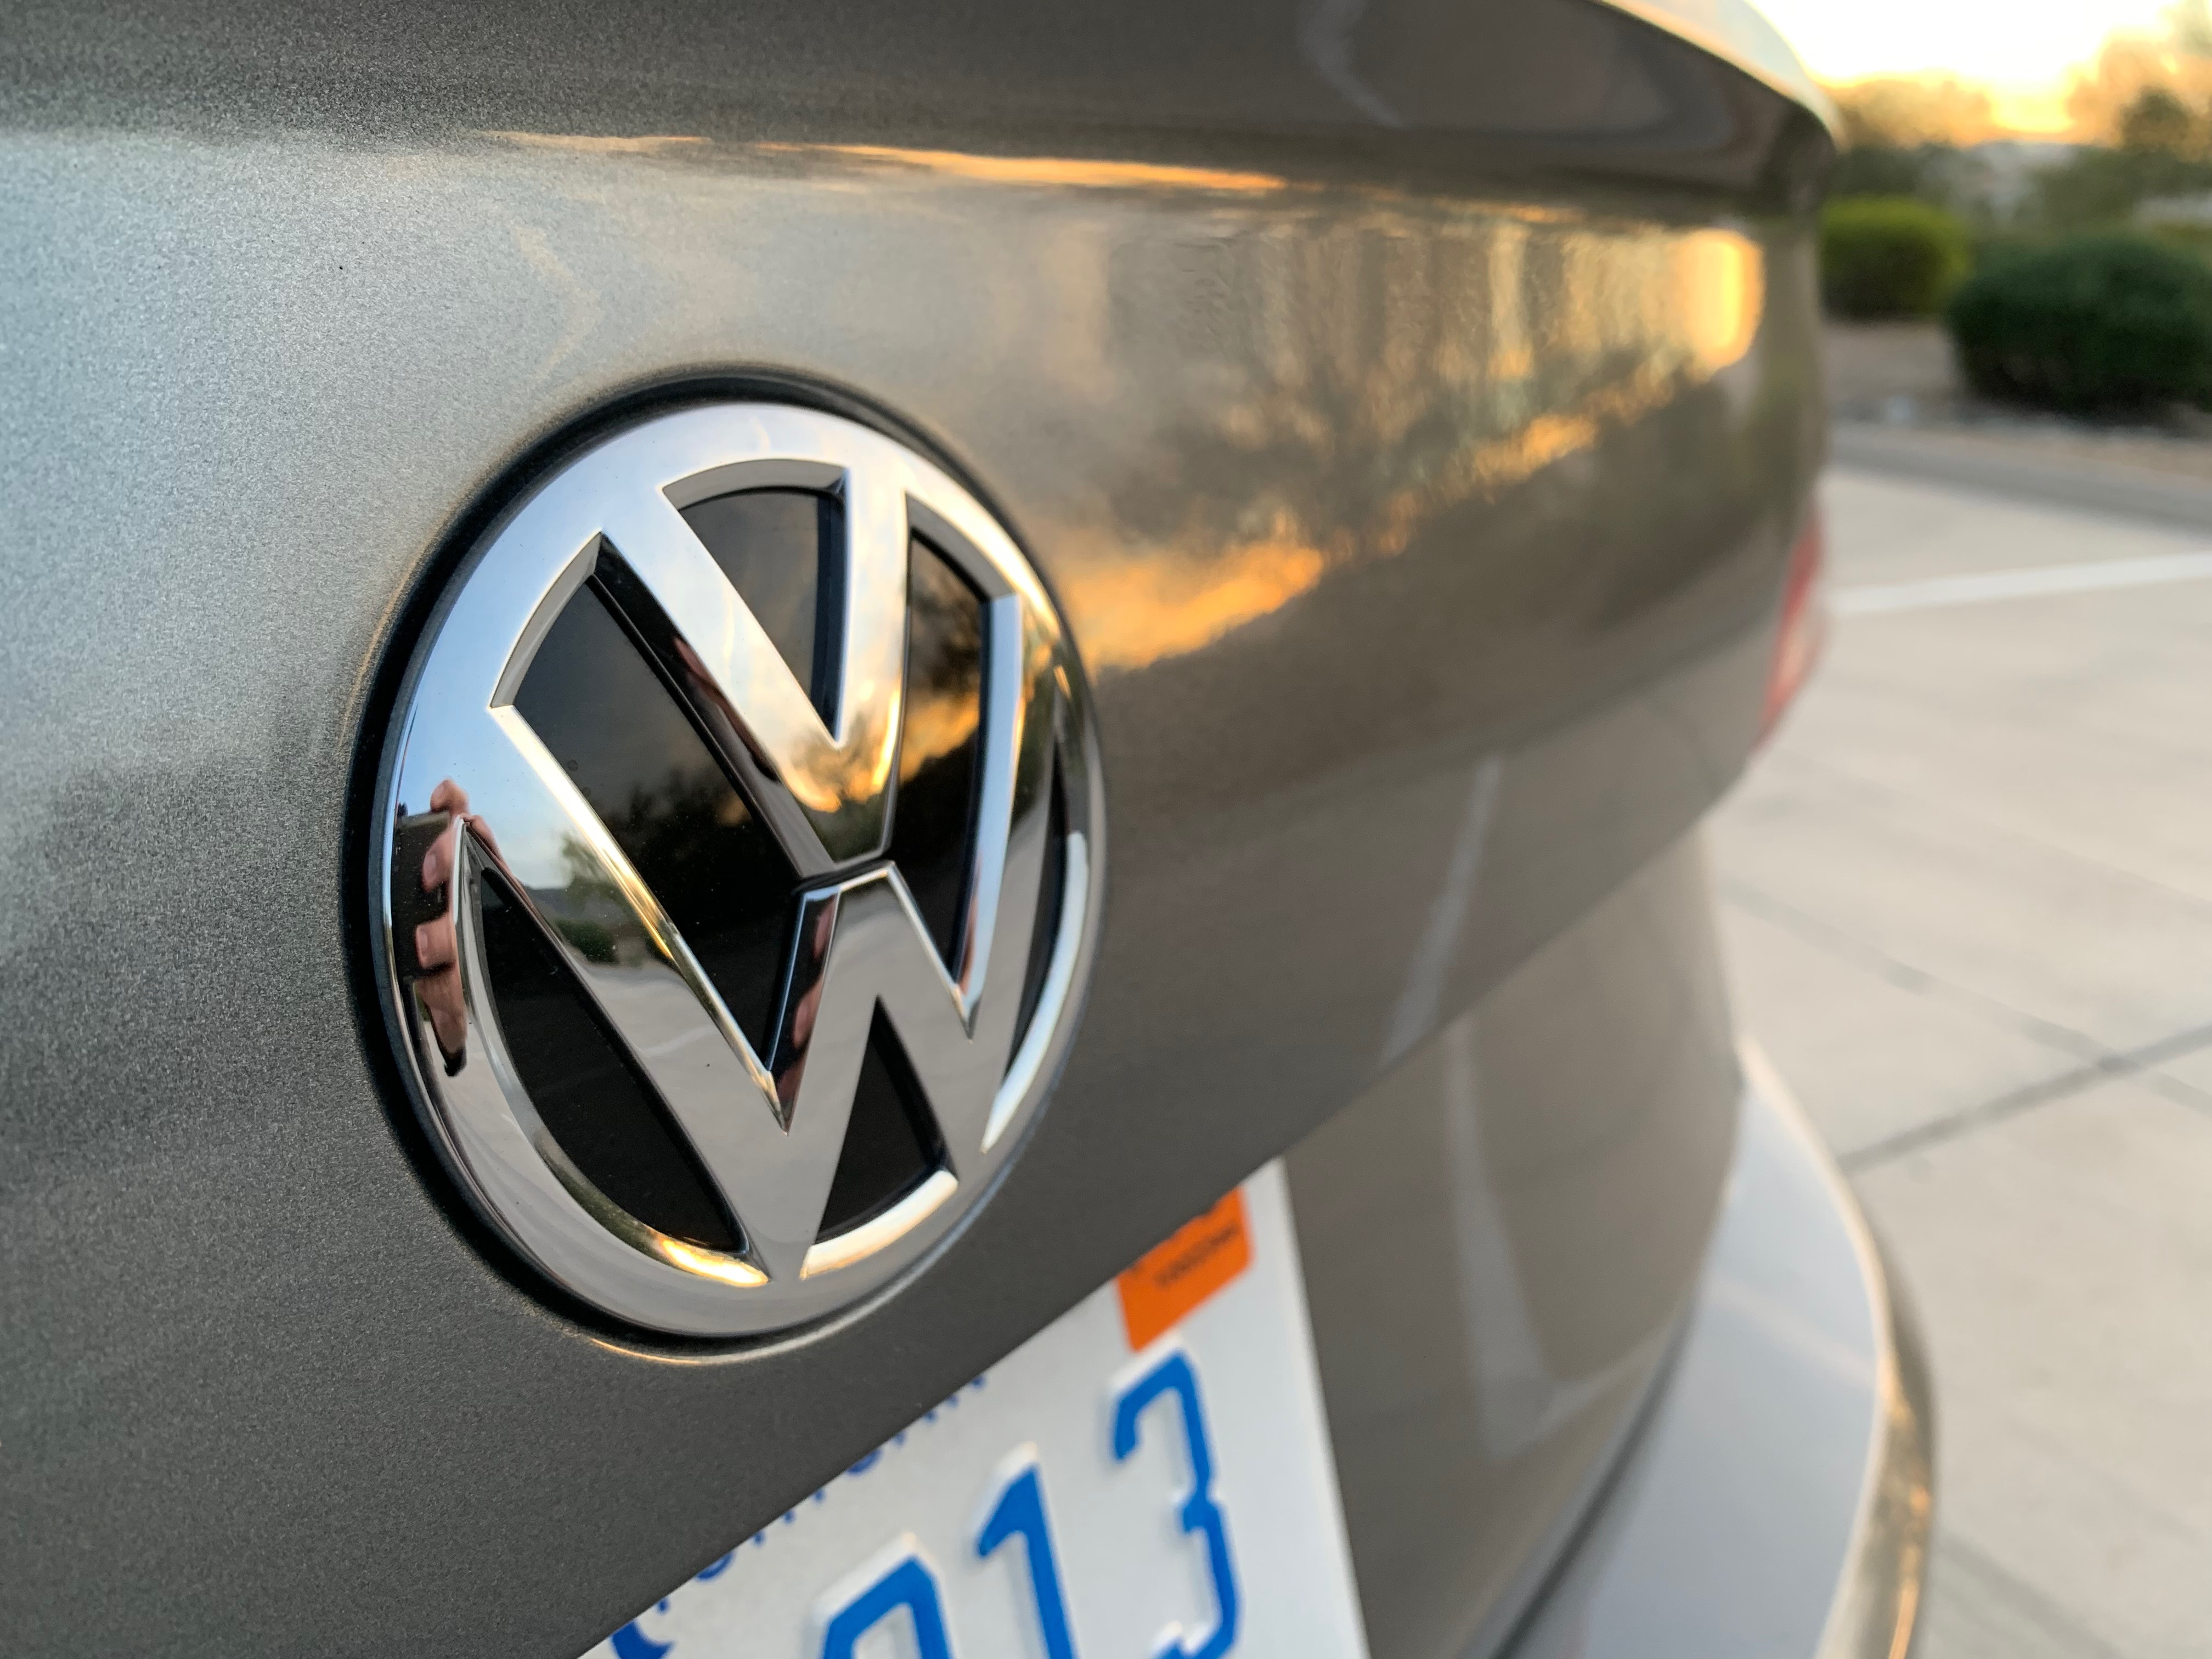 I always appreciate the VW logo, no matter what vehicle it's on. | Carter Nacke photo